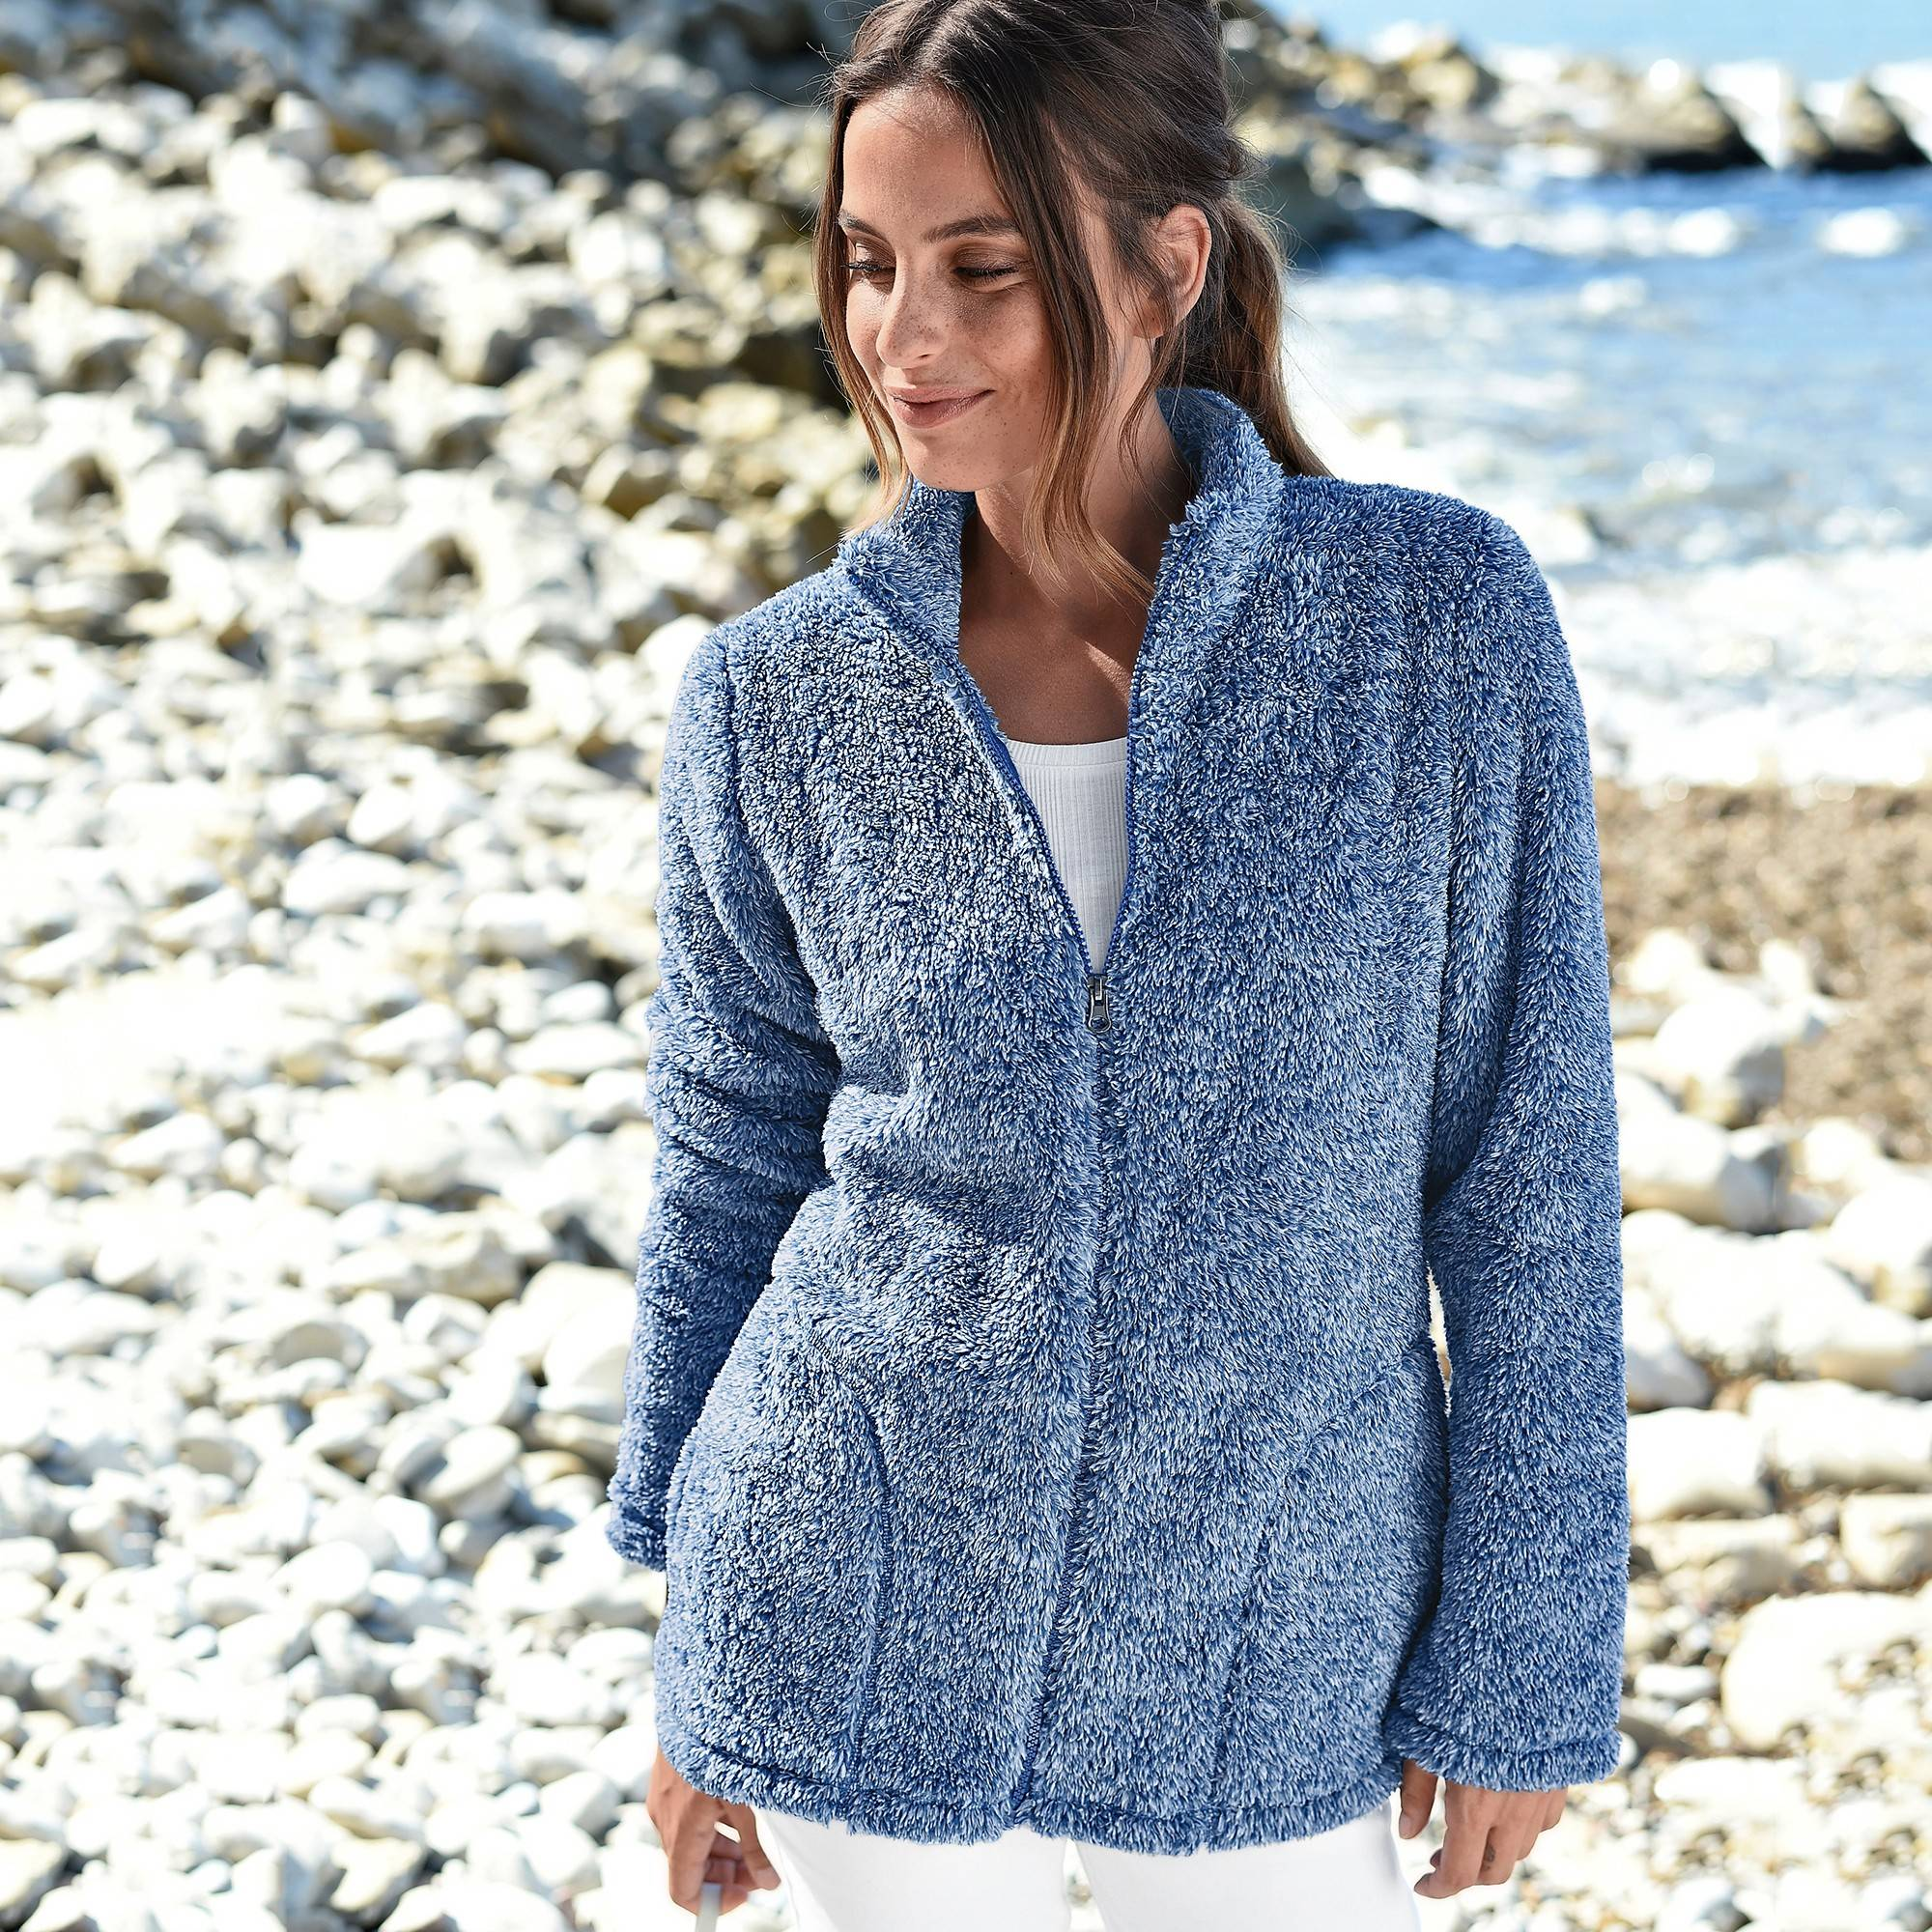 Casual Collection Veste maille peluche - Bleu - Taille : 34,36 - Blancheporte